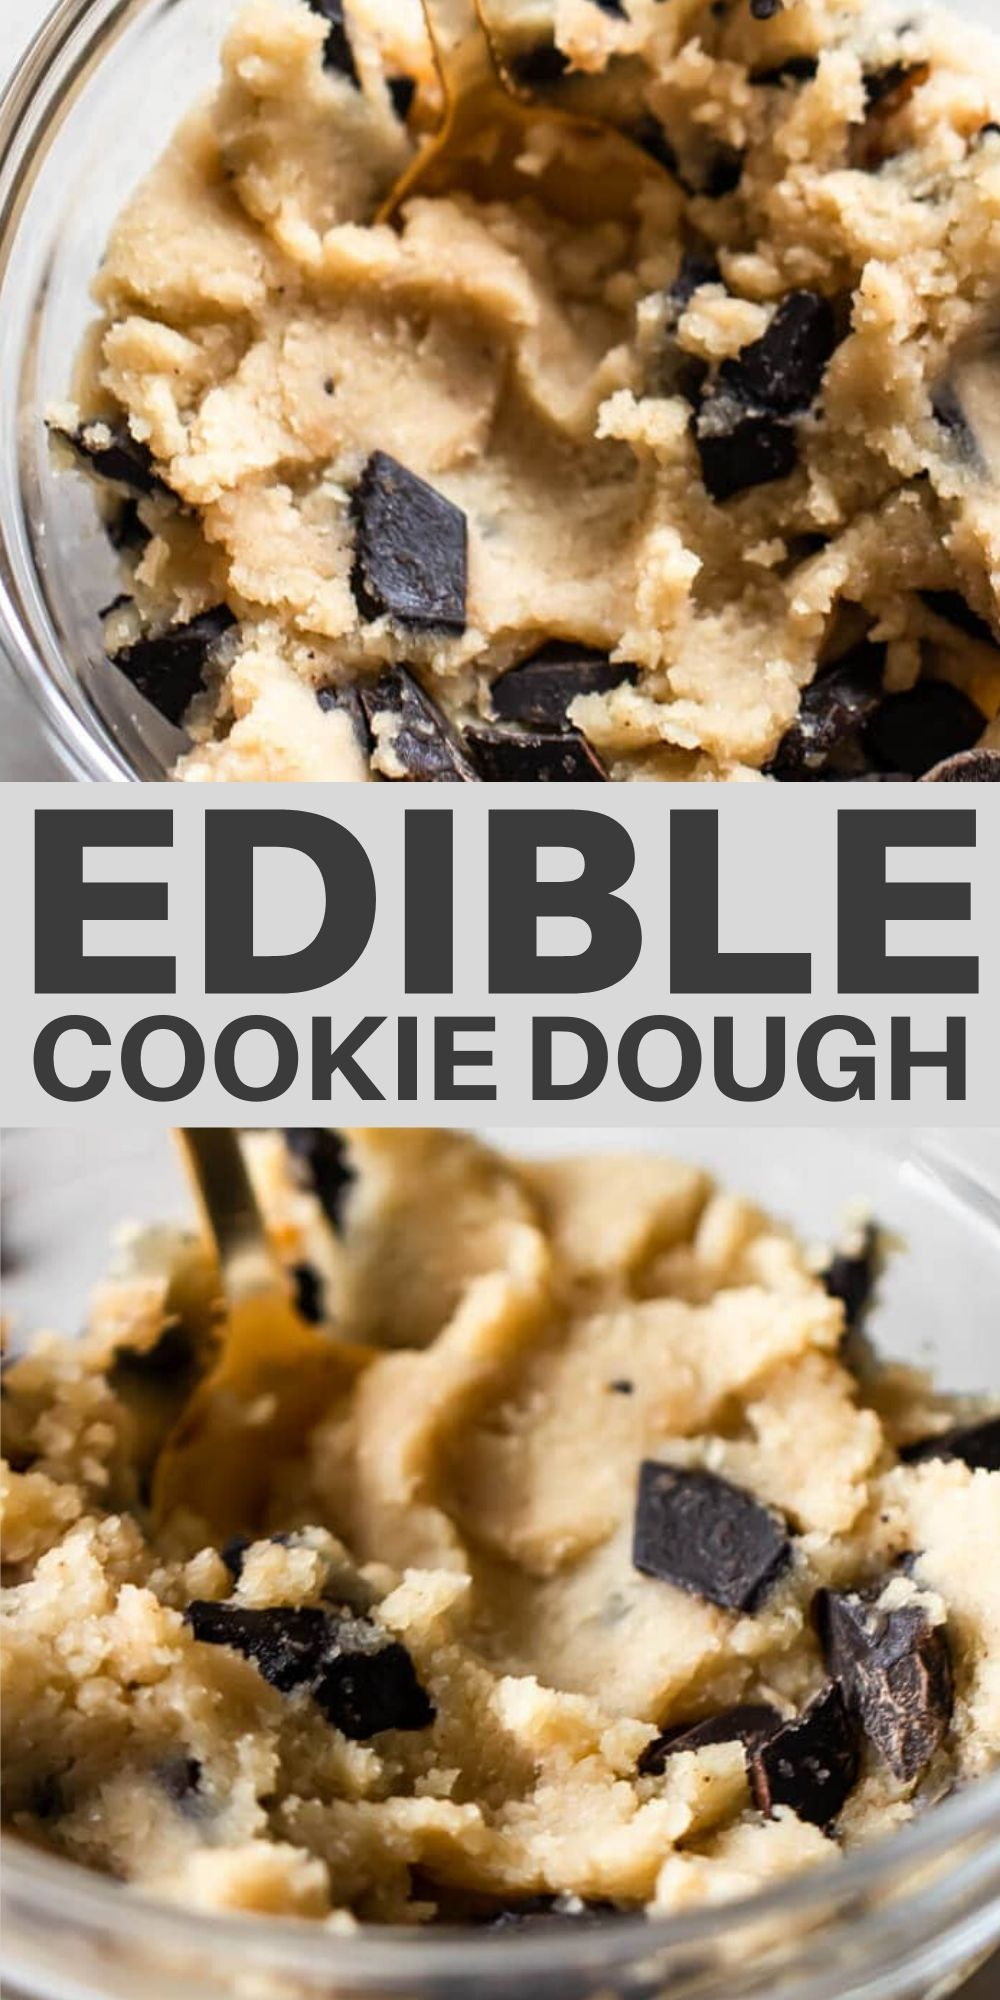 Edible Cookie Dough Recipe The Best Real Vibrant Recipe Edible Cookie Dough Edible Cookie Dough Recipe Cookie Dough